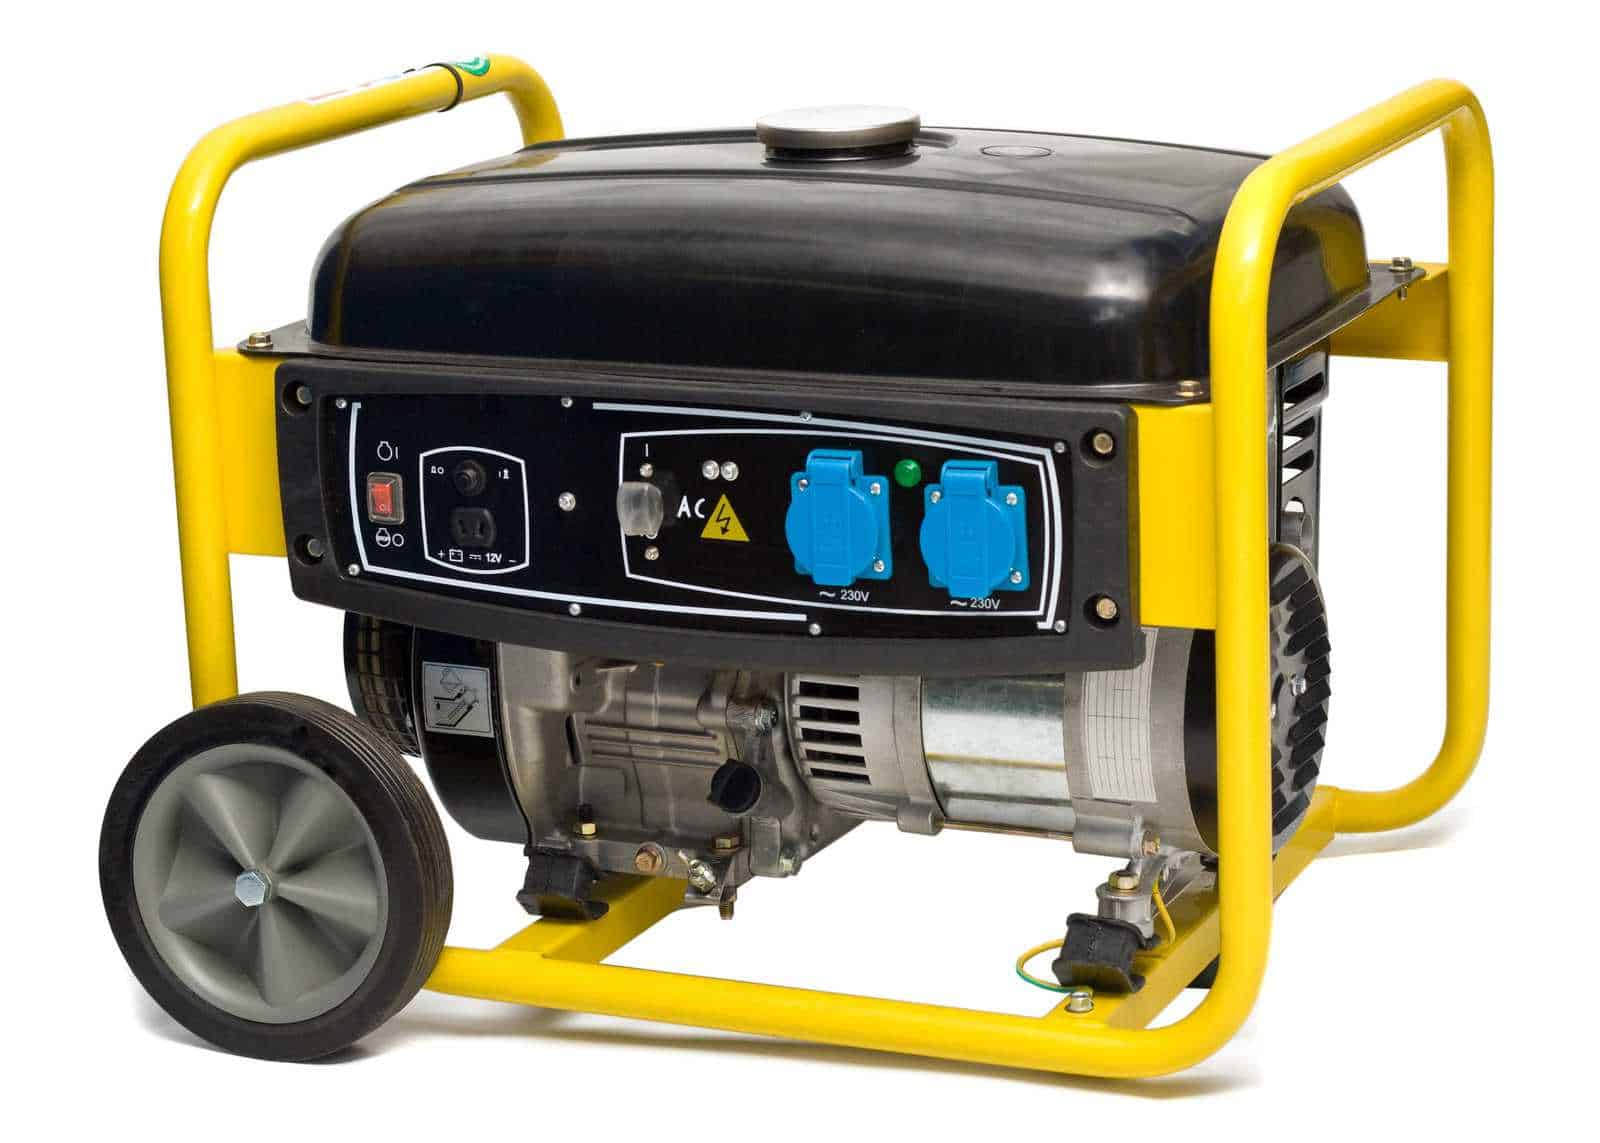 Best generator for a narrowboat.